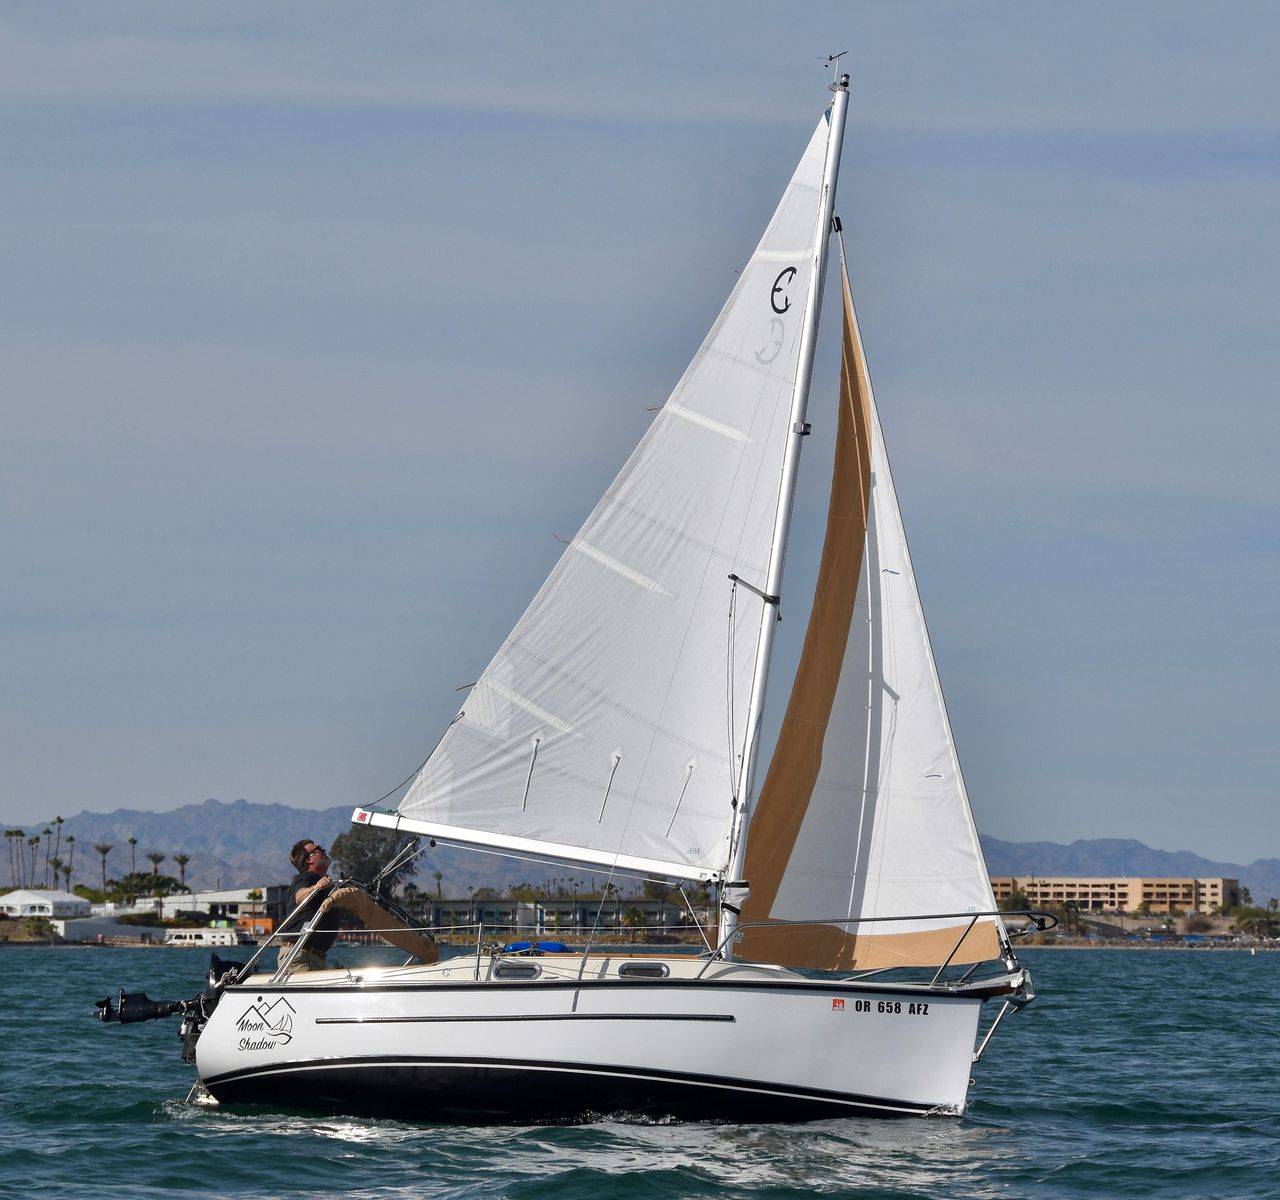 2018 Used Com-Pac Eclipse Sloop Sailboat For Sale - $39,900